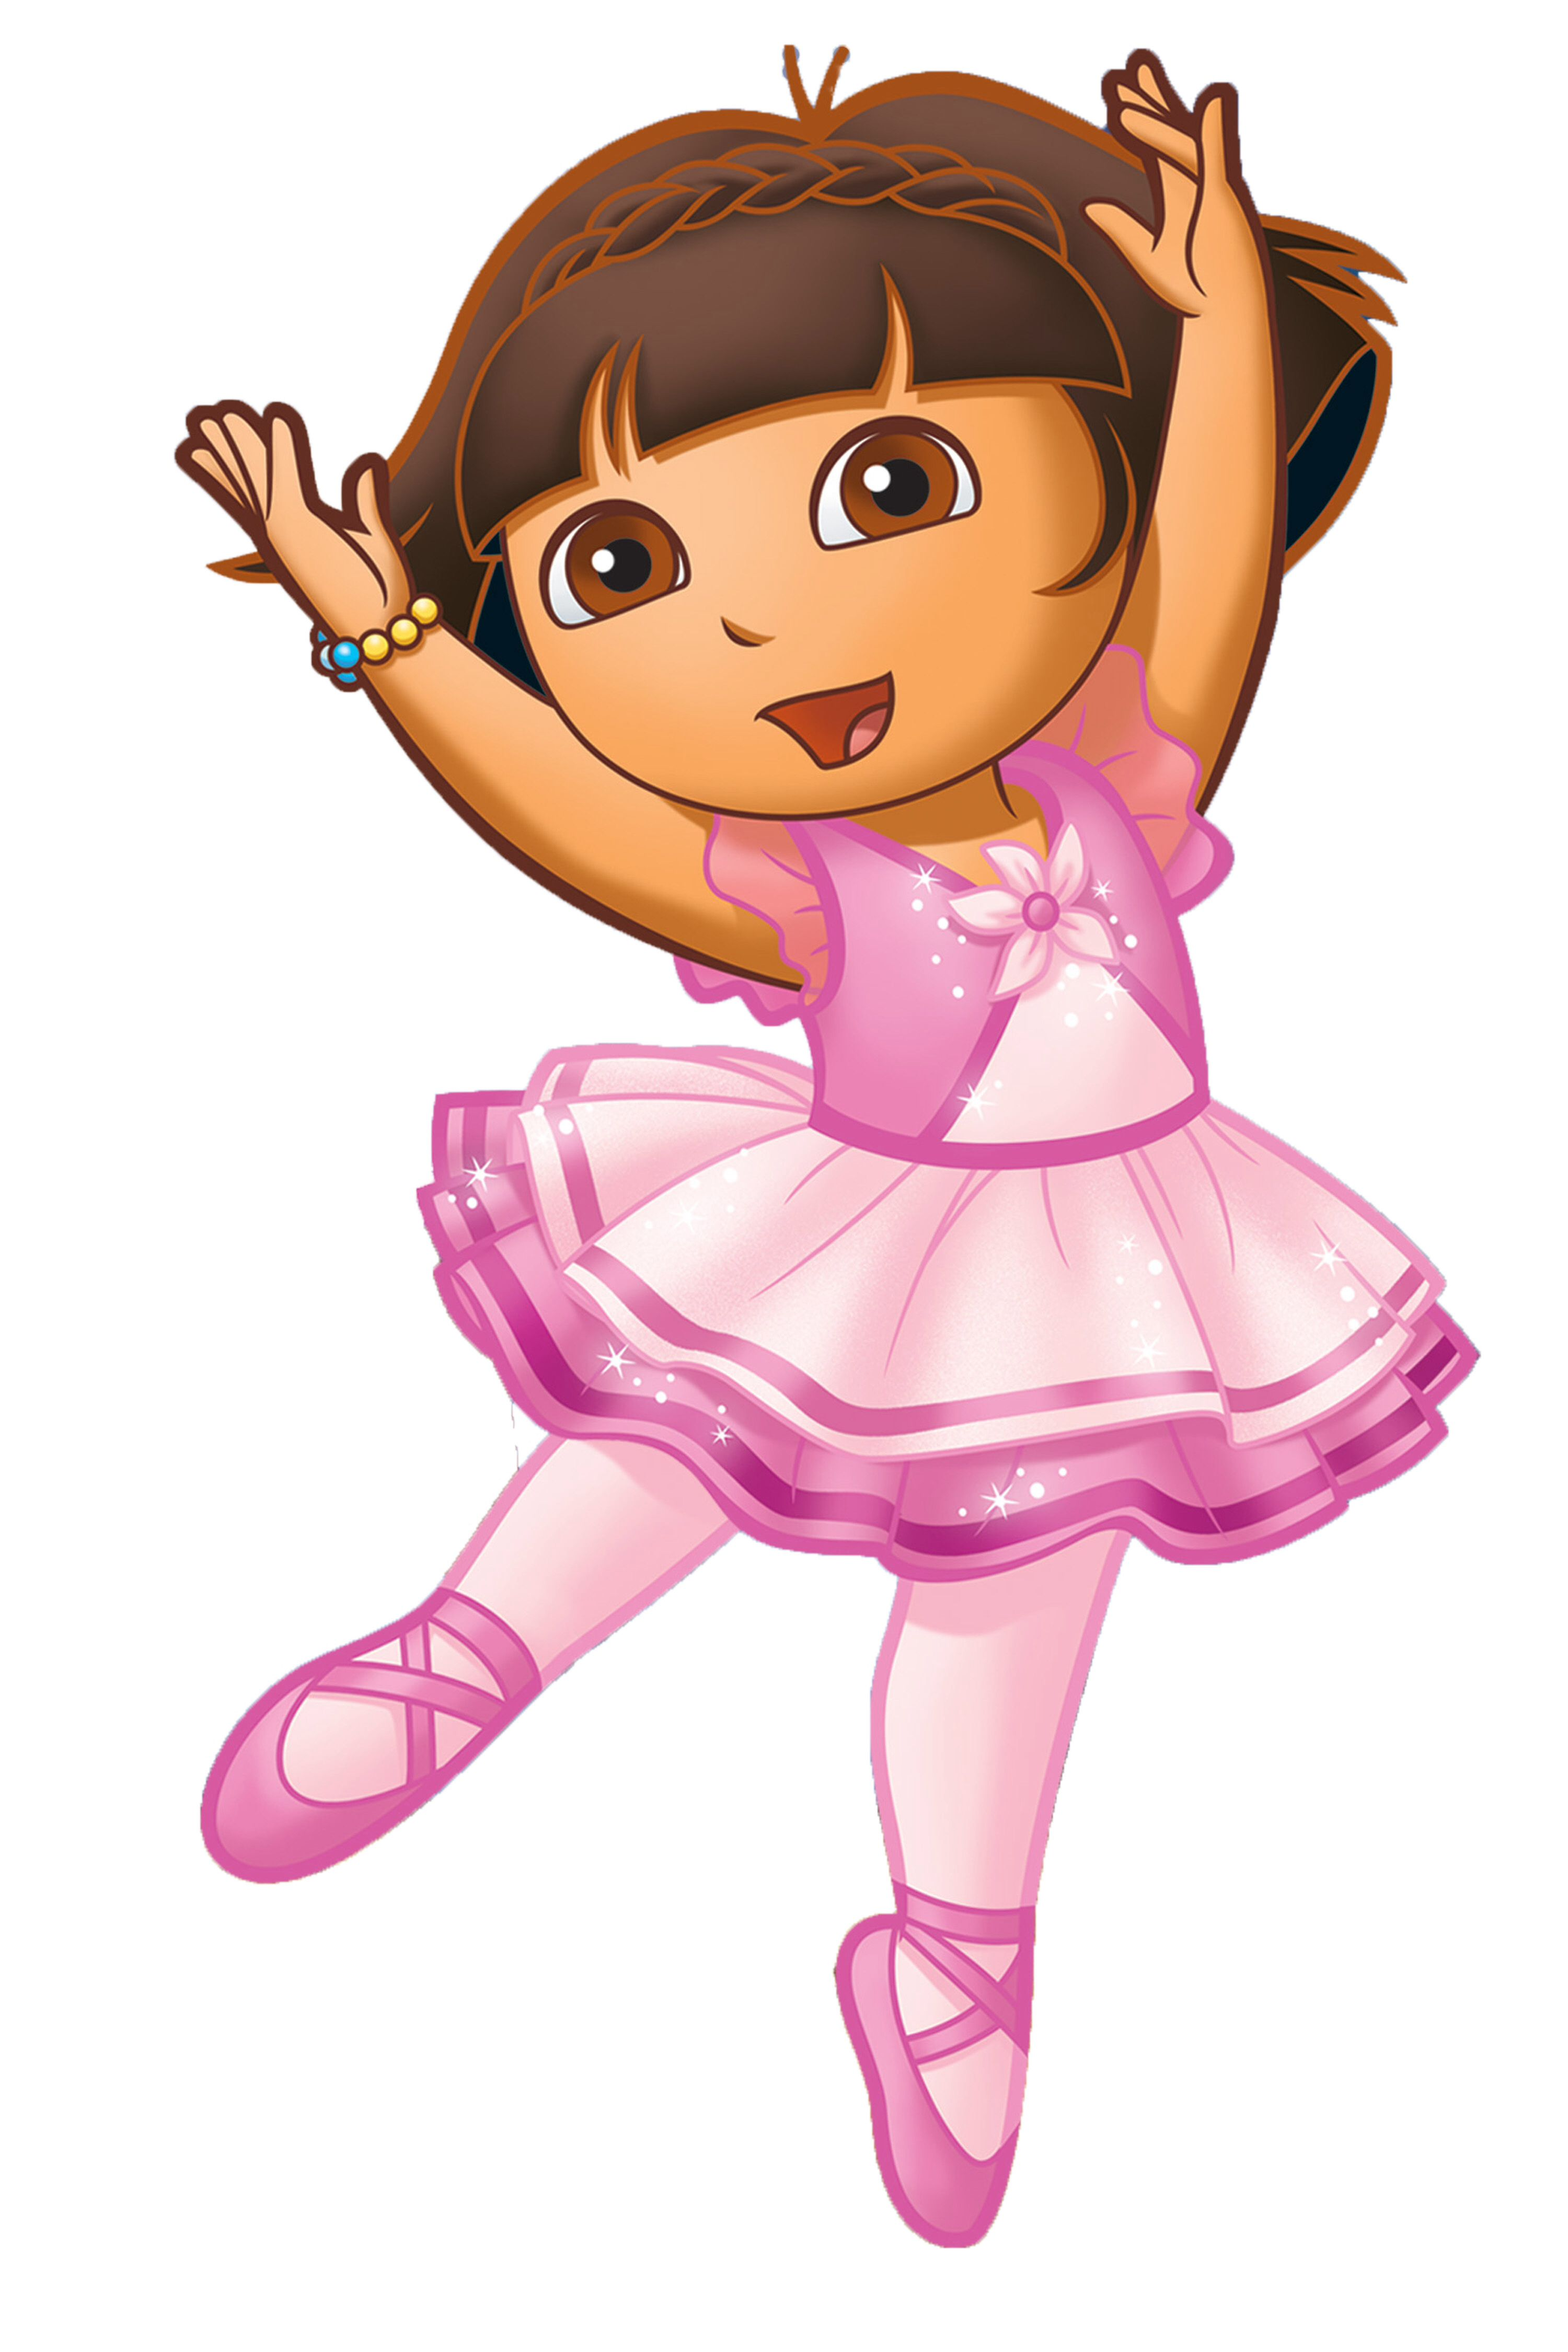 Dora the explorer ballet are mistaken